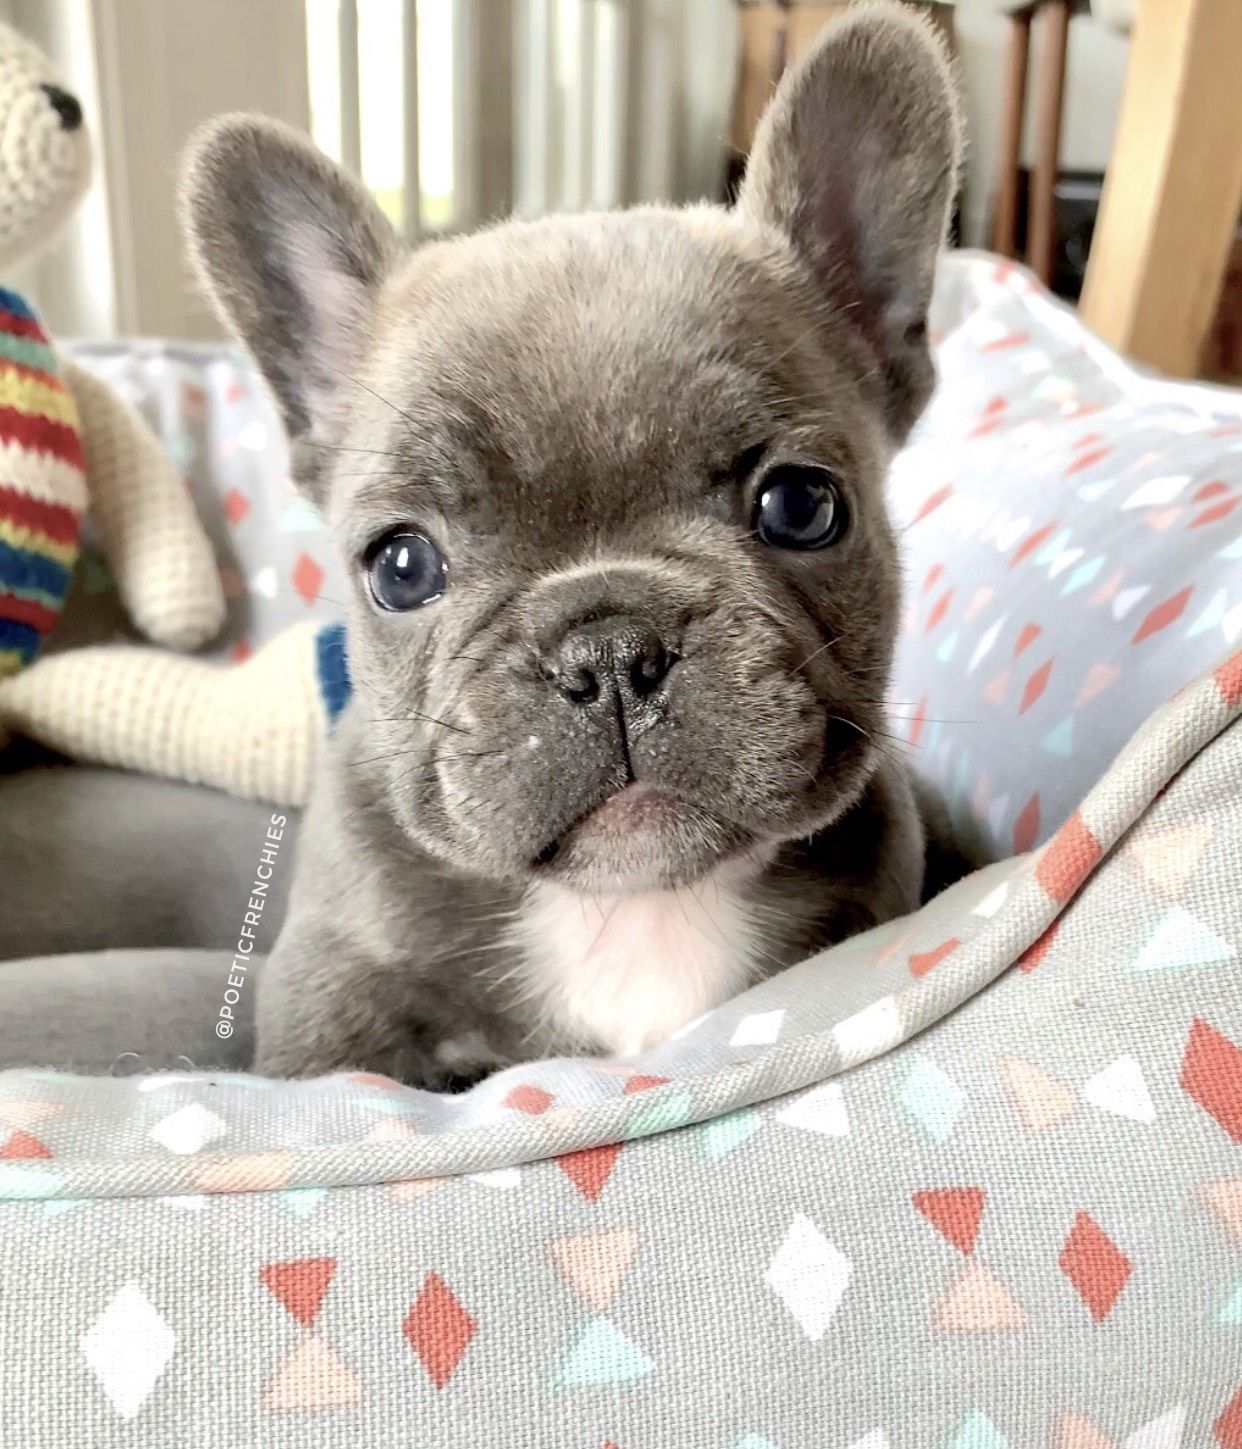 L O G A N Www Poeticfrenchbulldogs Com French Bulldog Puppies For Sale Health Certifi French Bulldog Puppies Cute Baby Animals Bulldog Puppies